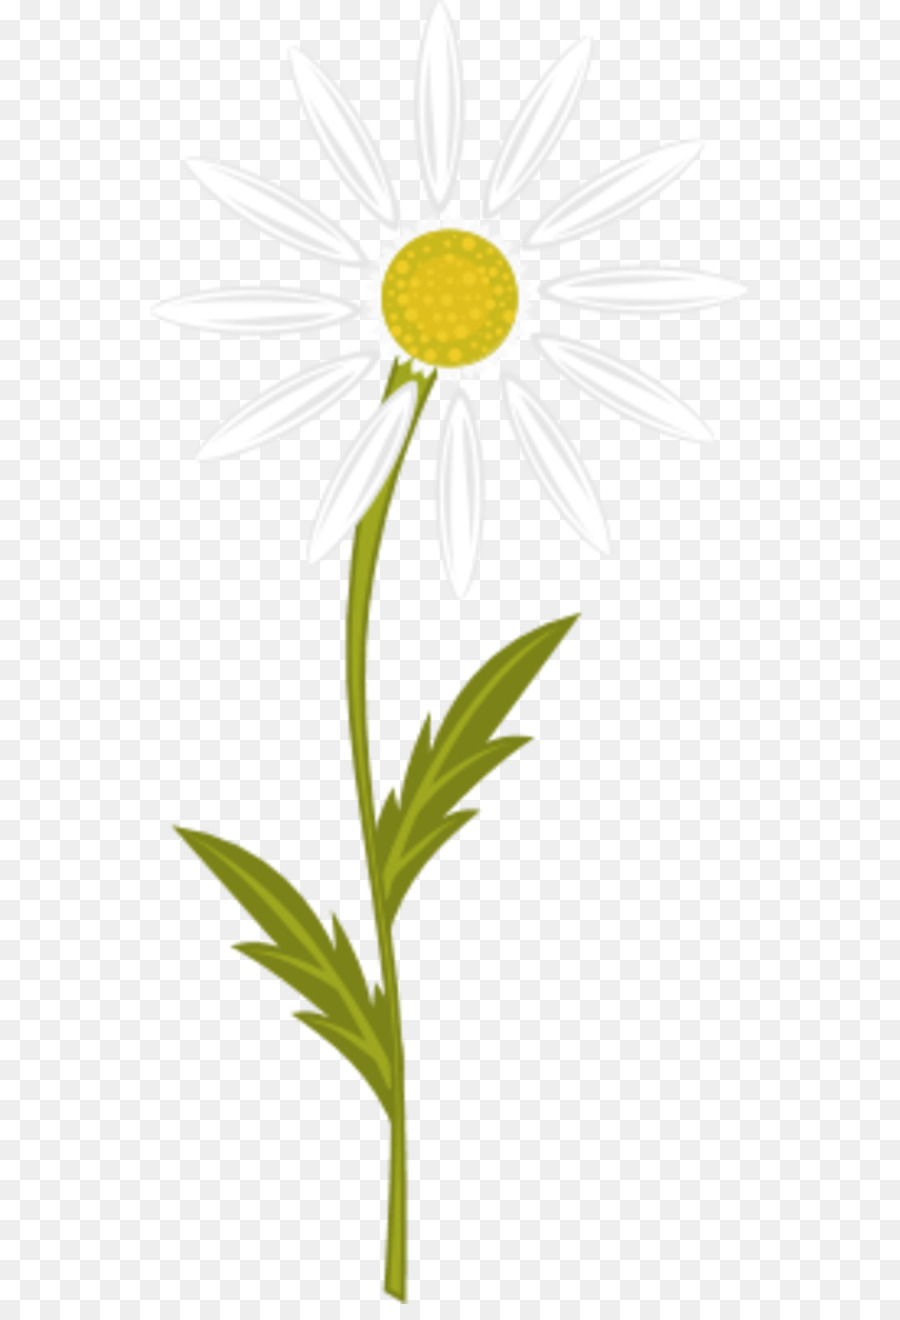 Chamomile clipart svg free library Tea, Flower, Yellow, transparent png image & clipart free download svg free library